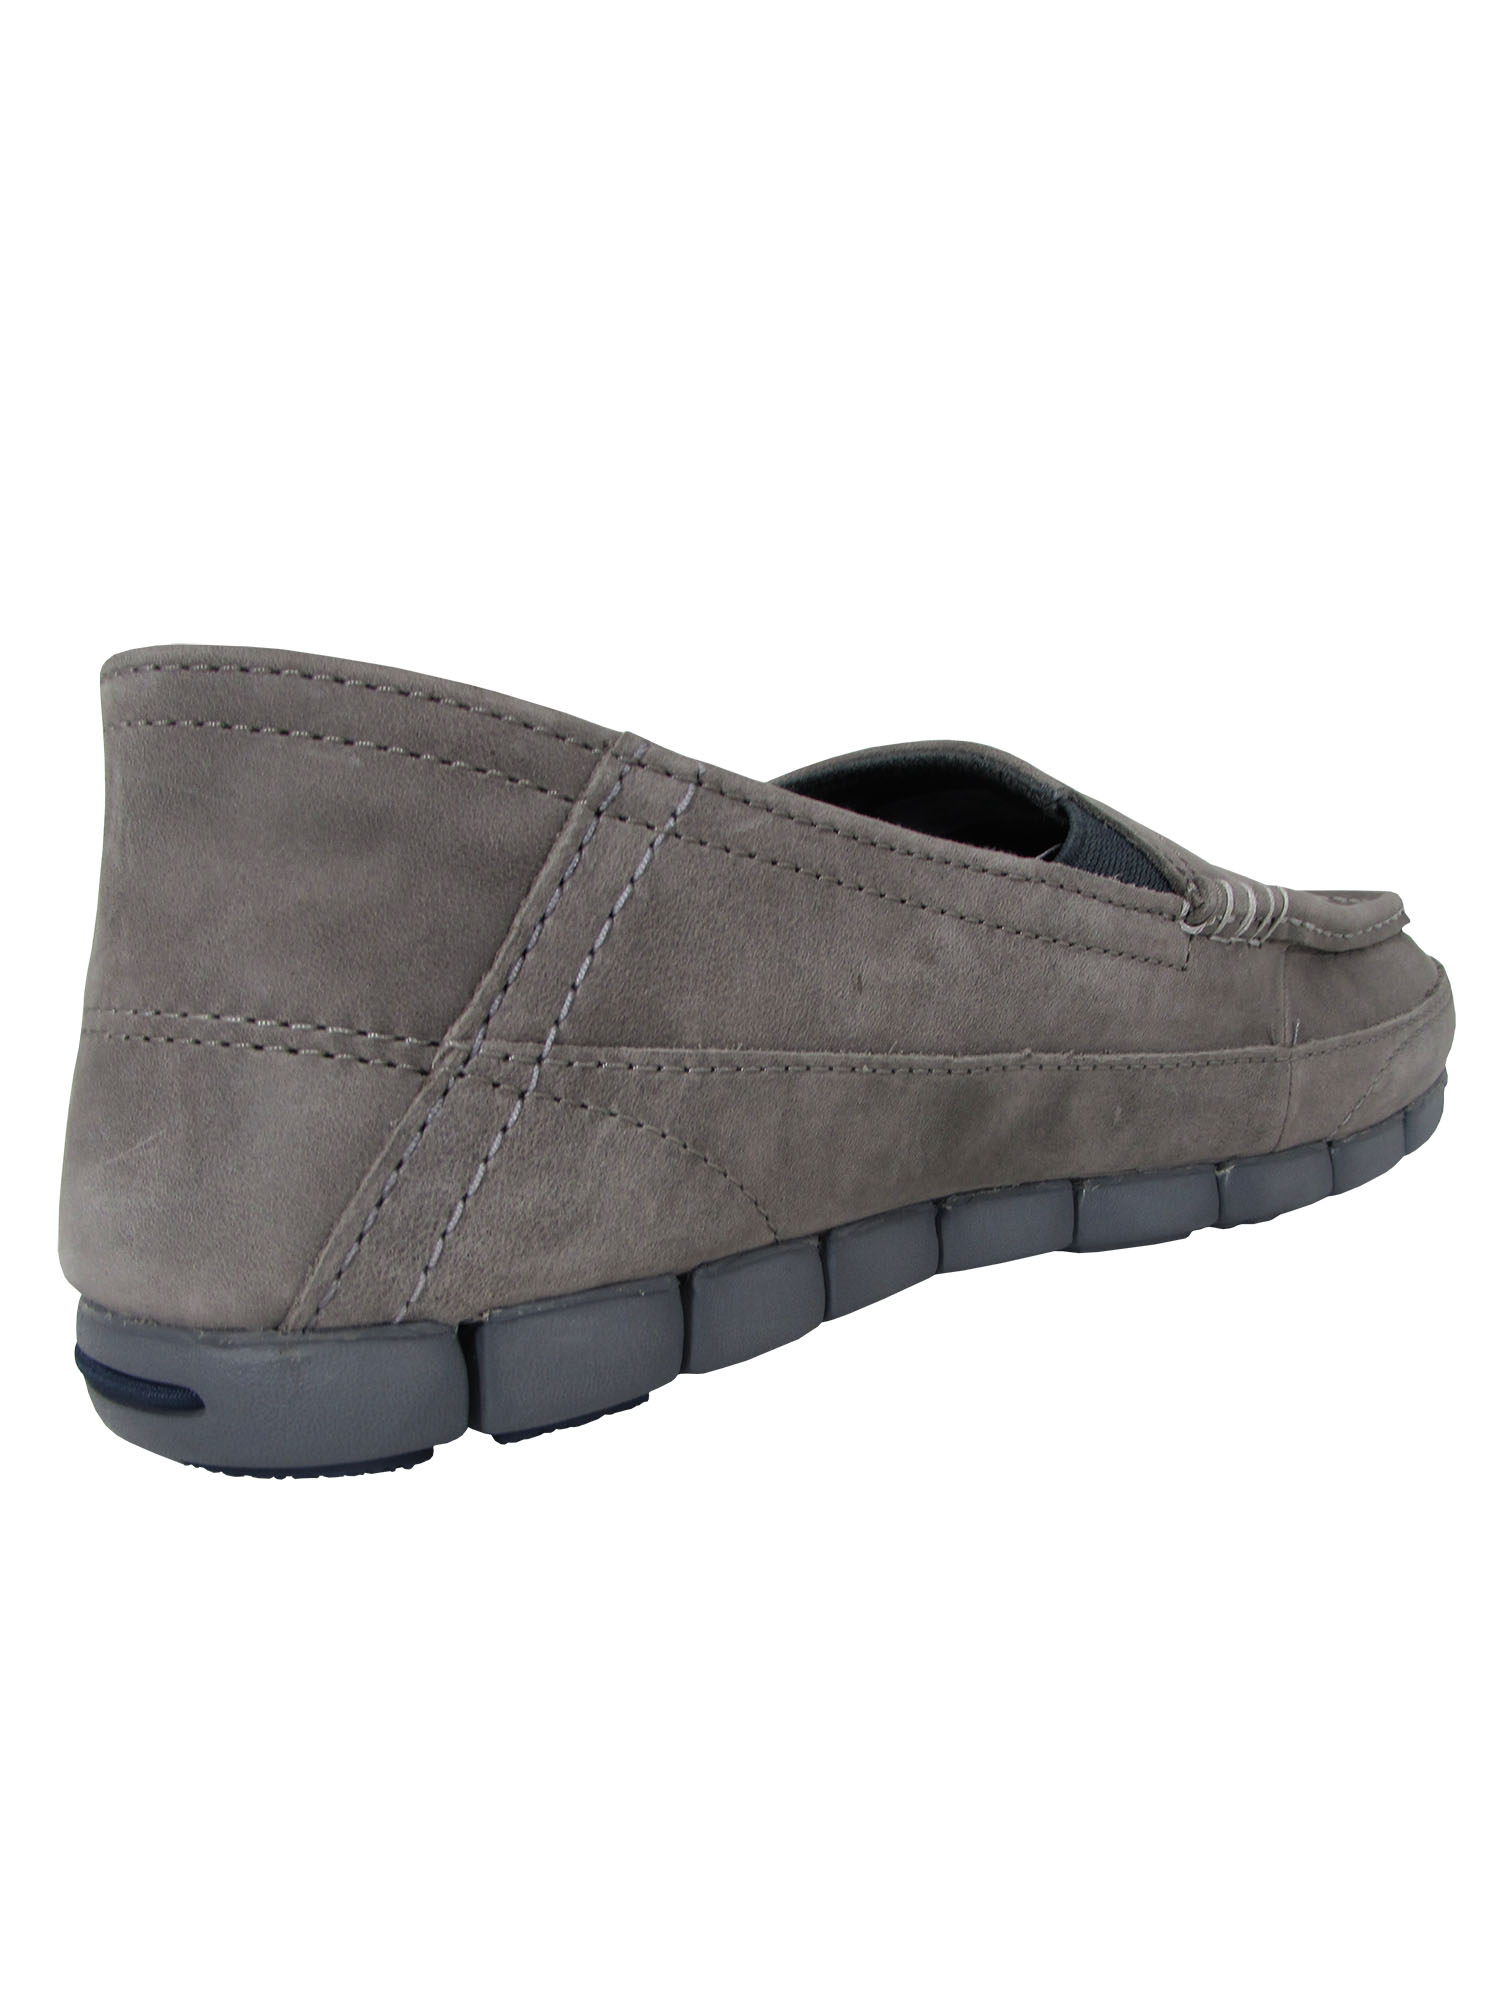 Crocs-Mens-Stretch-Sole-Leather-Loafer-Shoes thumbnail 4